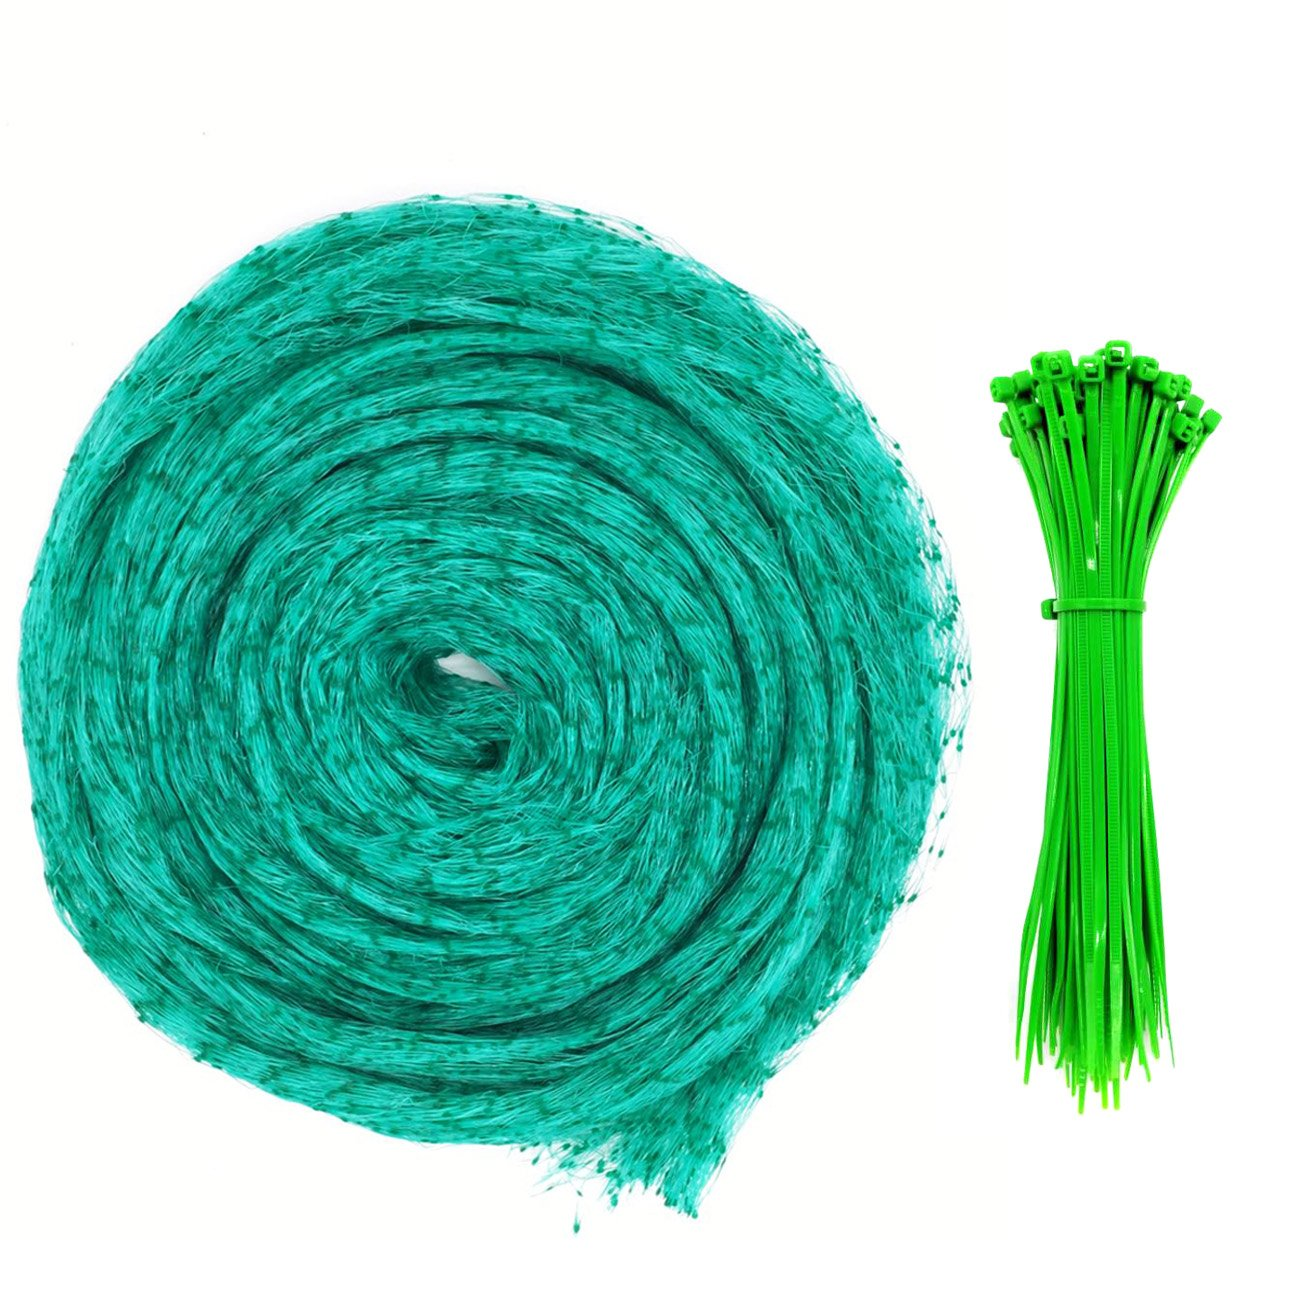 Senneny Bird Netting, 33Ft x 13Ft Anti-Bird Netting 100 Pcs Nylon Cable Ties, Green Garden Netting Protecting Plants Fruit Trees from Rodents Birds Deer by Senneny (Image #2)